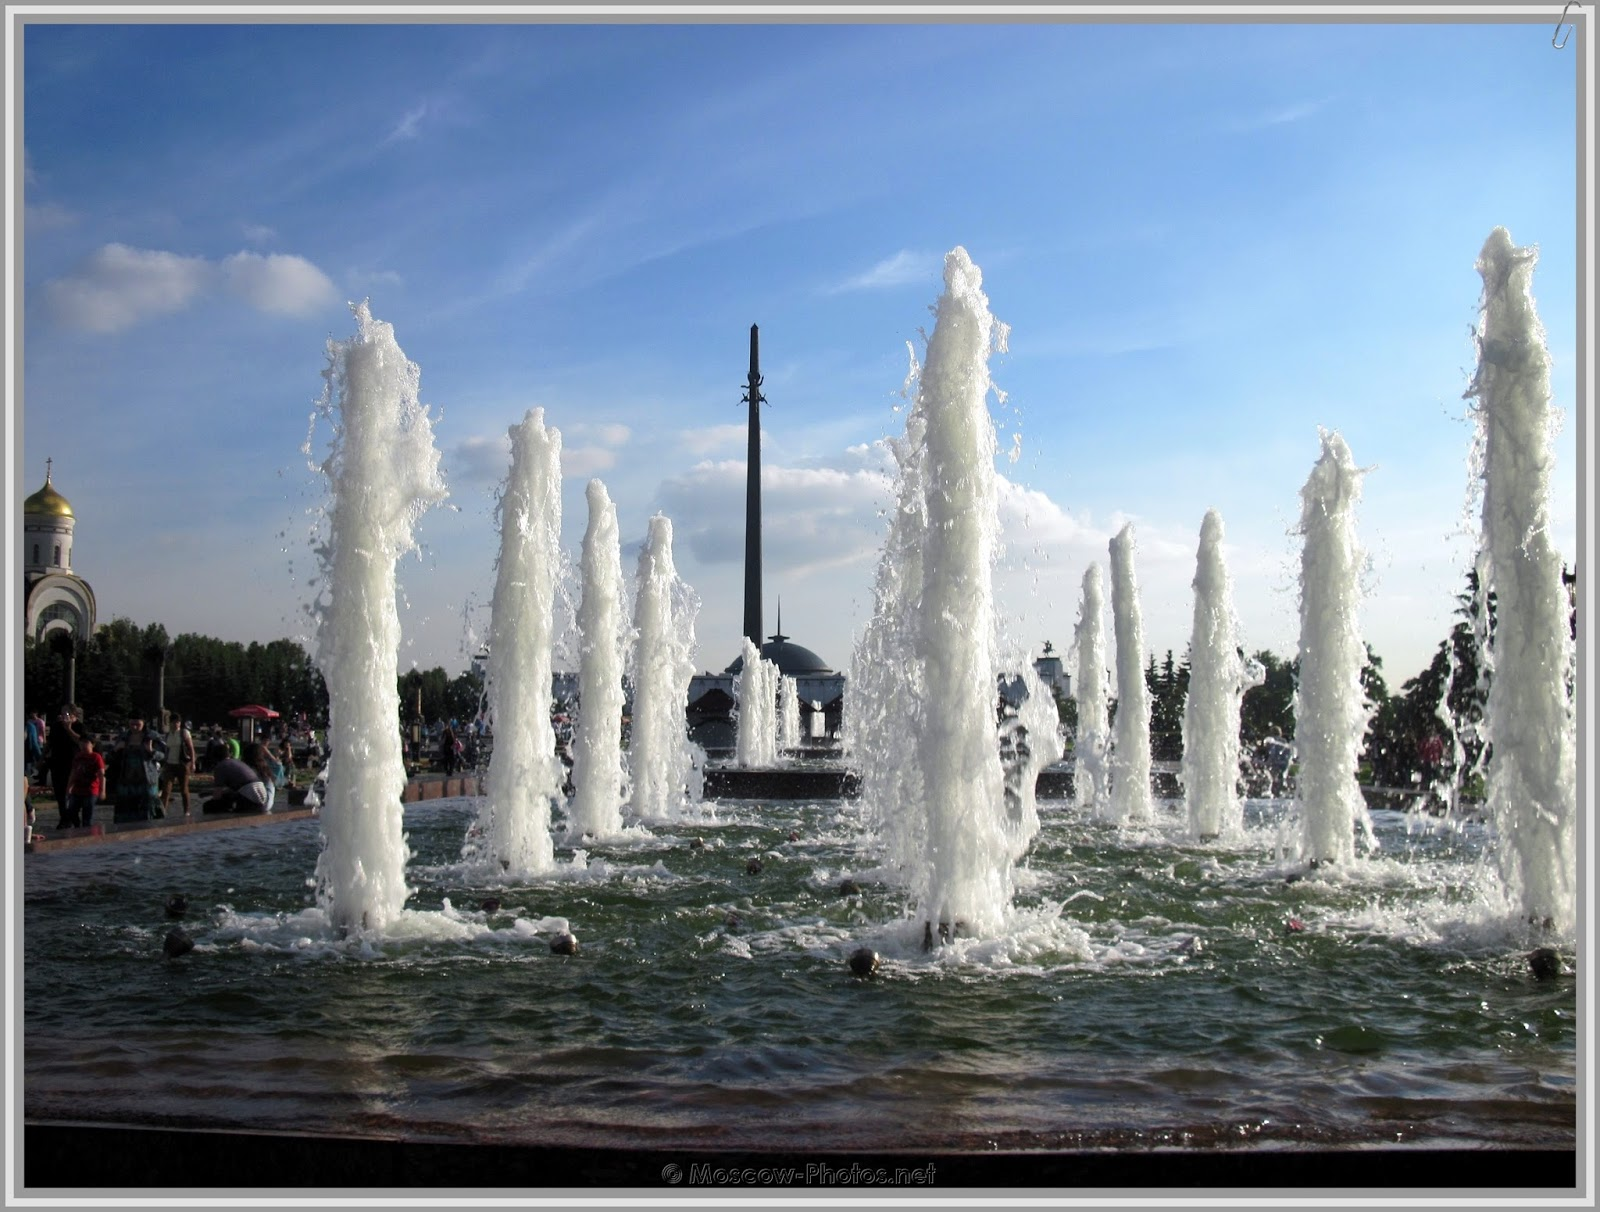 Fountains in Moscow's Victory Park